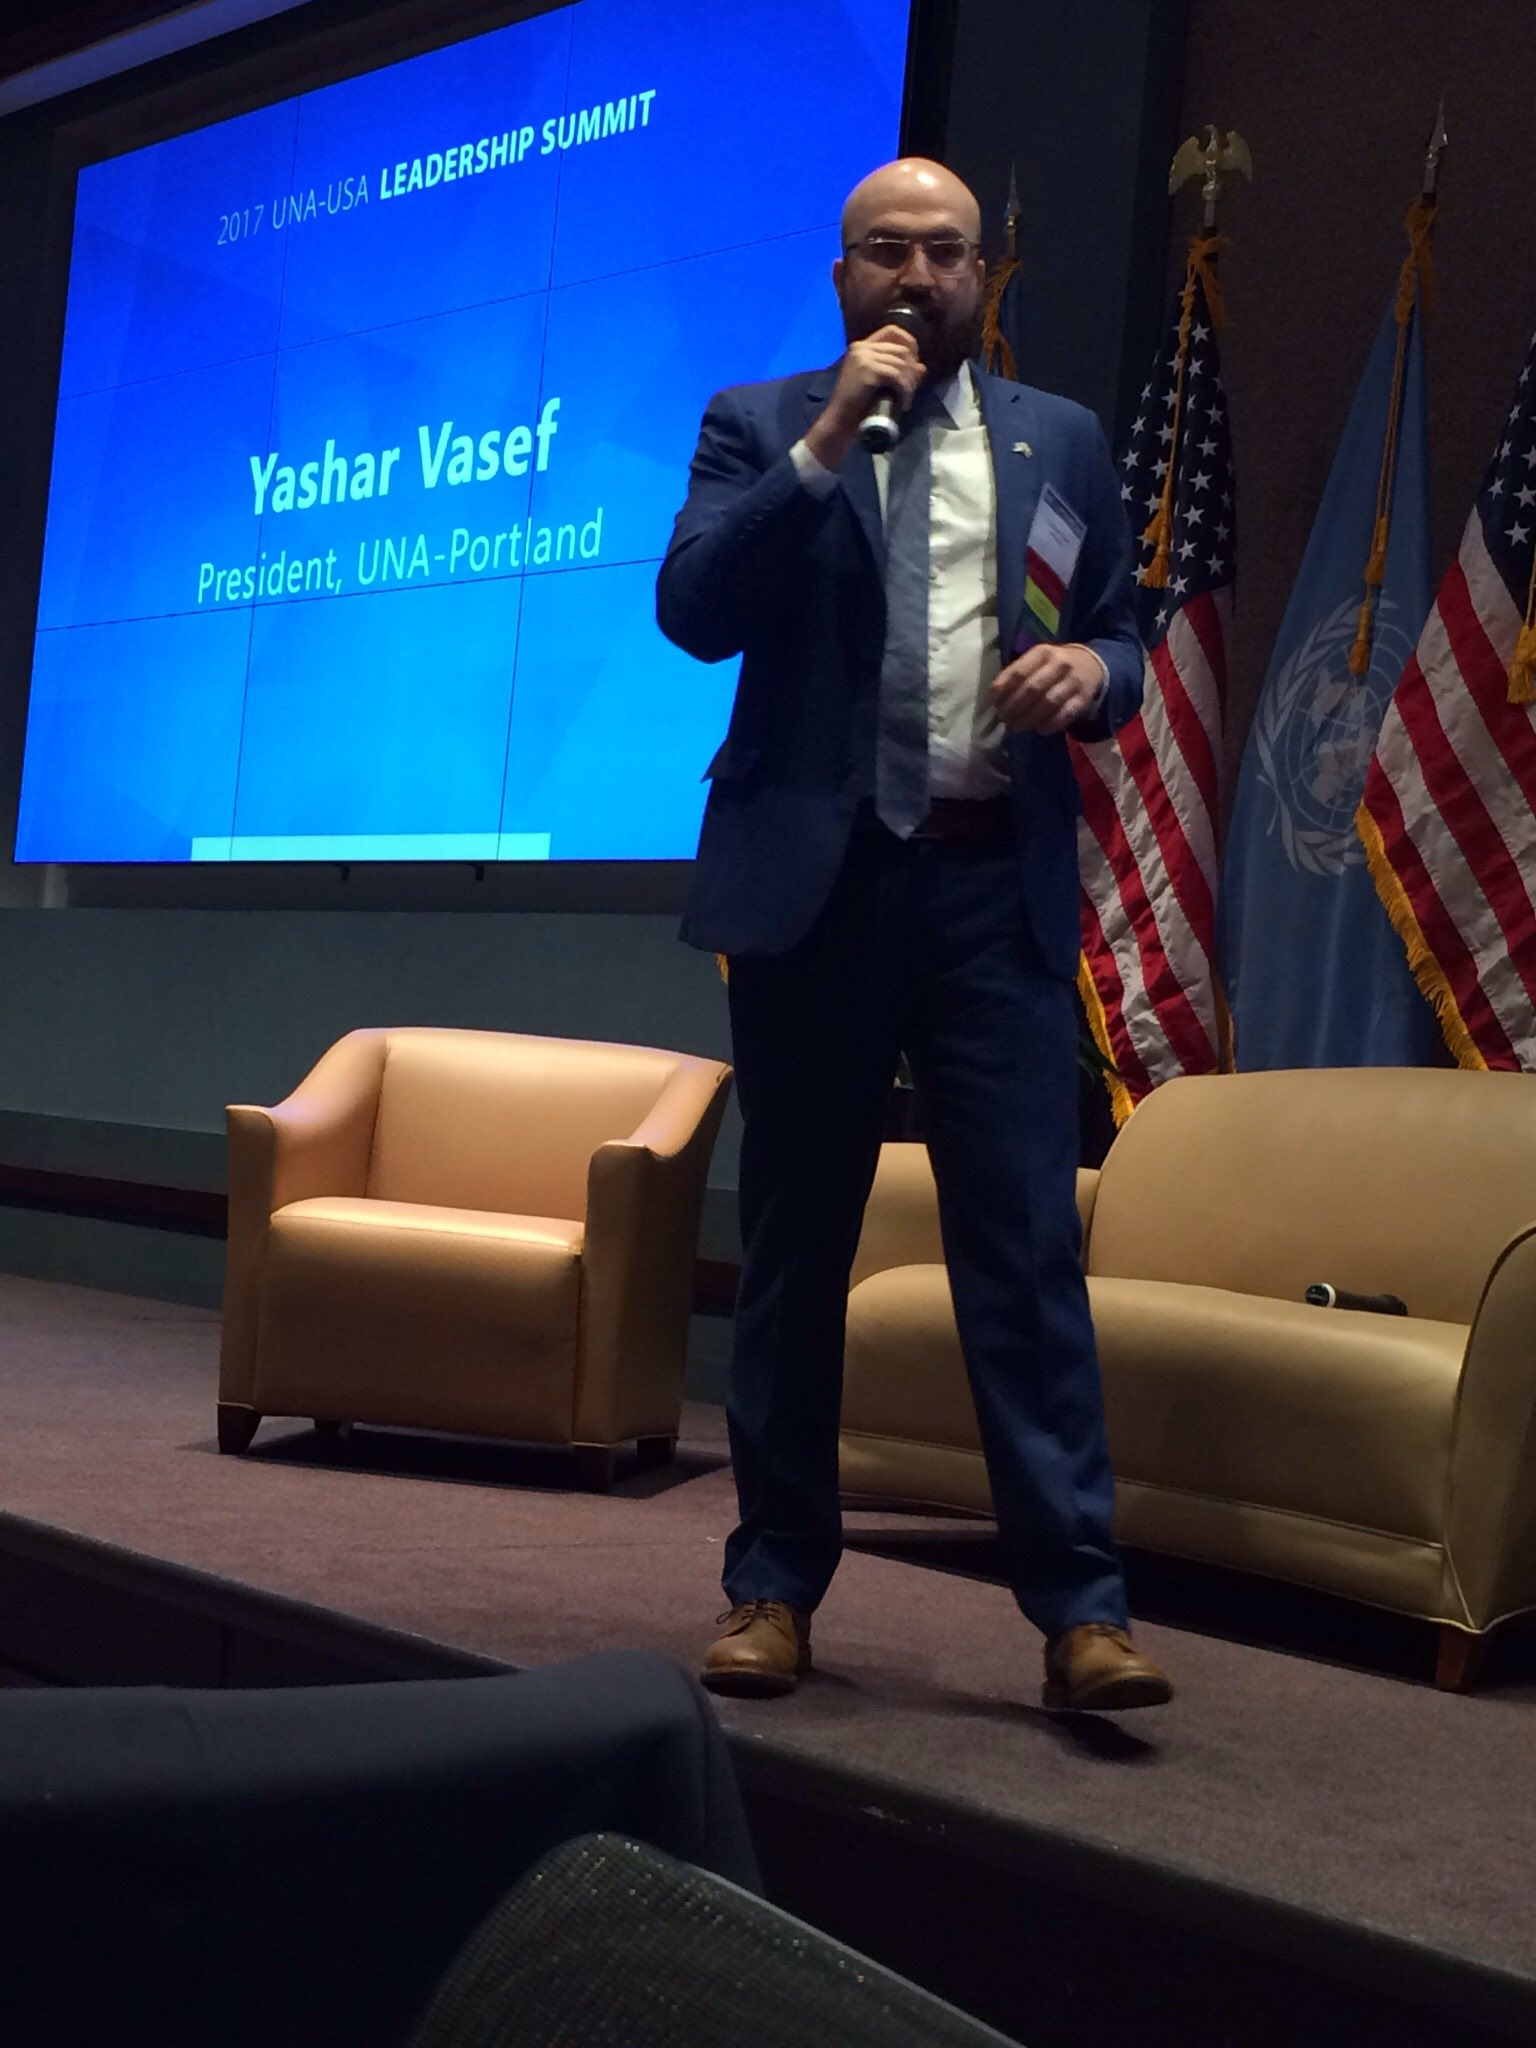 Yashar Vasef of UNA Portland at #USAForUN Summit shares his story of coming to own his cultural heritage of being an Iranian refugee. https://t.co/BdqzfeVEB8